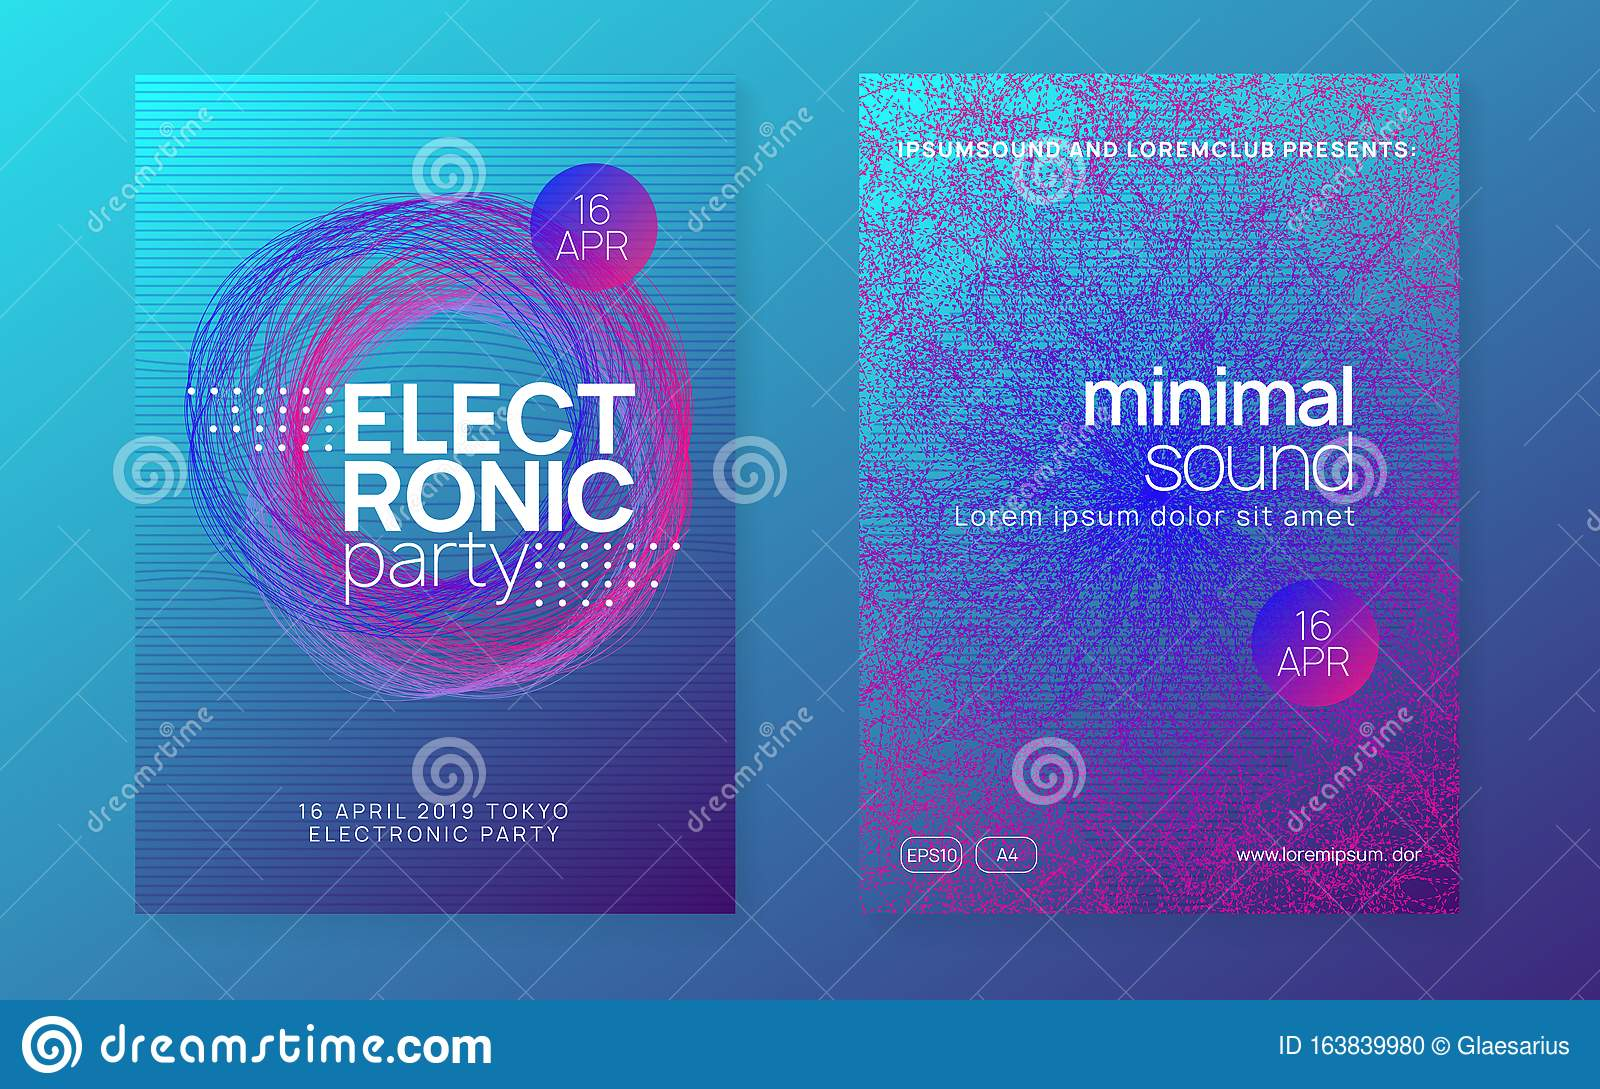 Neon Club Flyer Electro Dance Music Trance Party Dj Electroni Stock  Illustration - Download Image Now - iStock